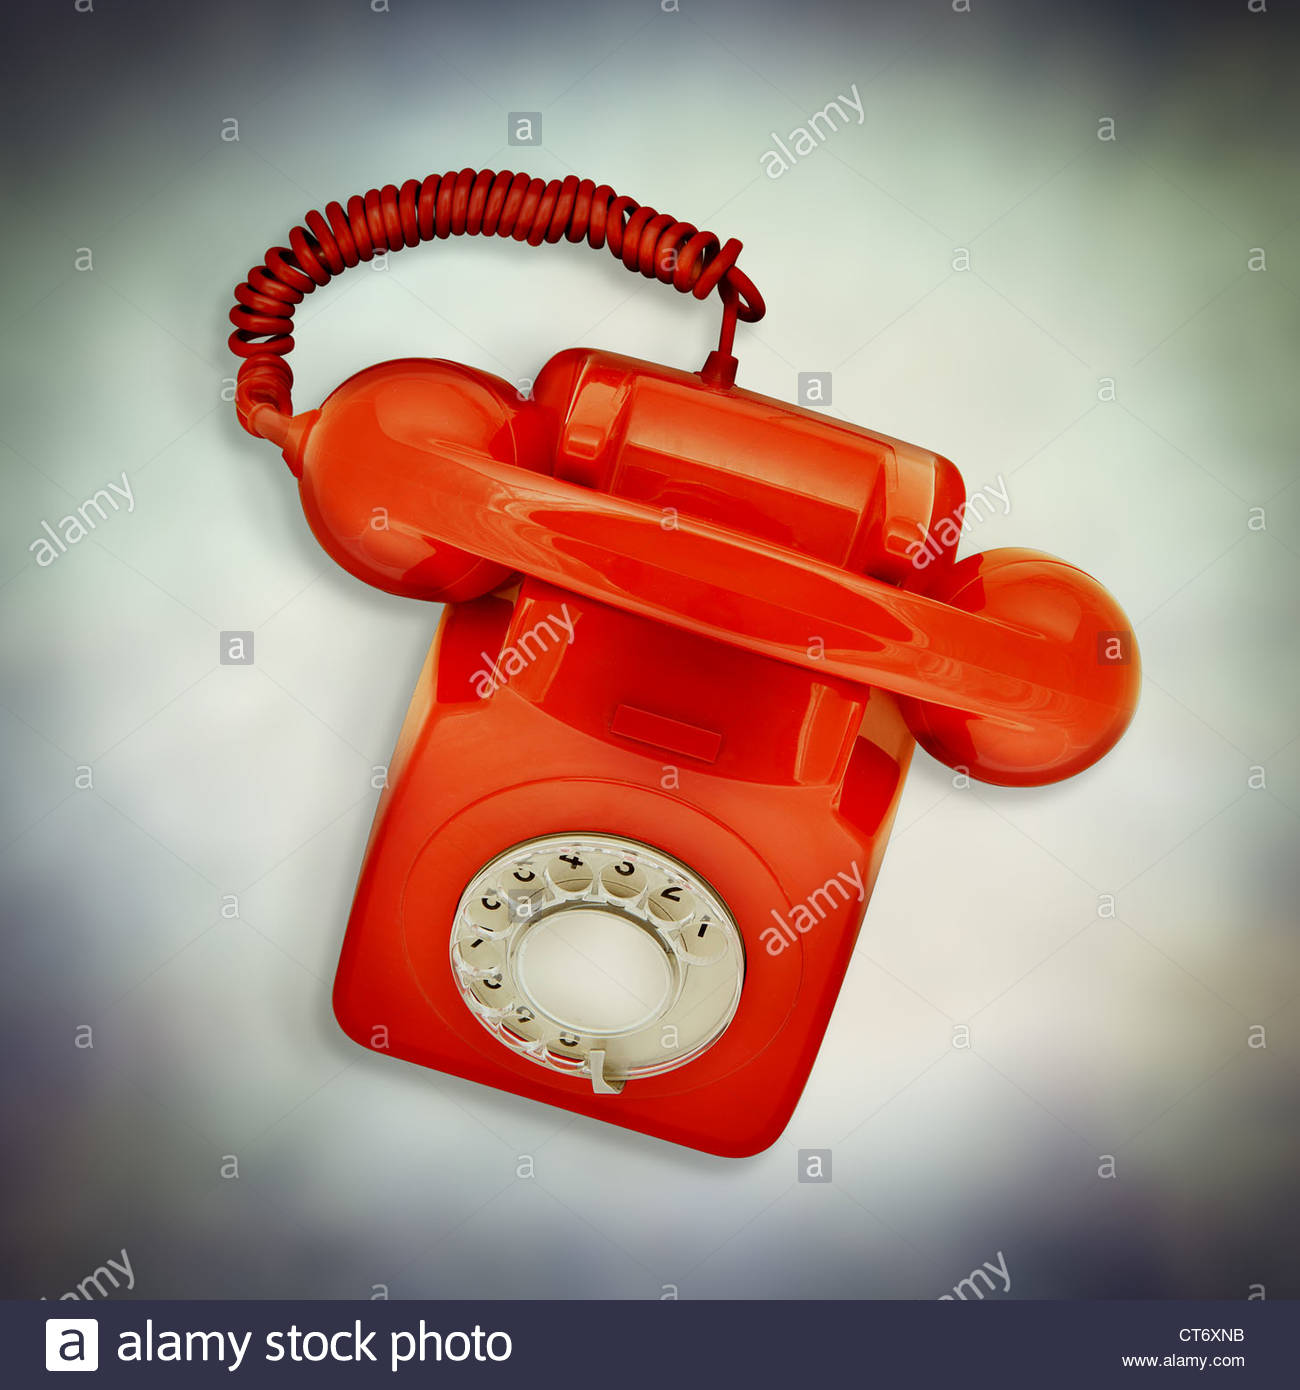 red retro telephone - Stock Image